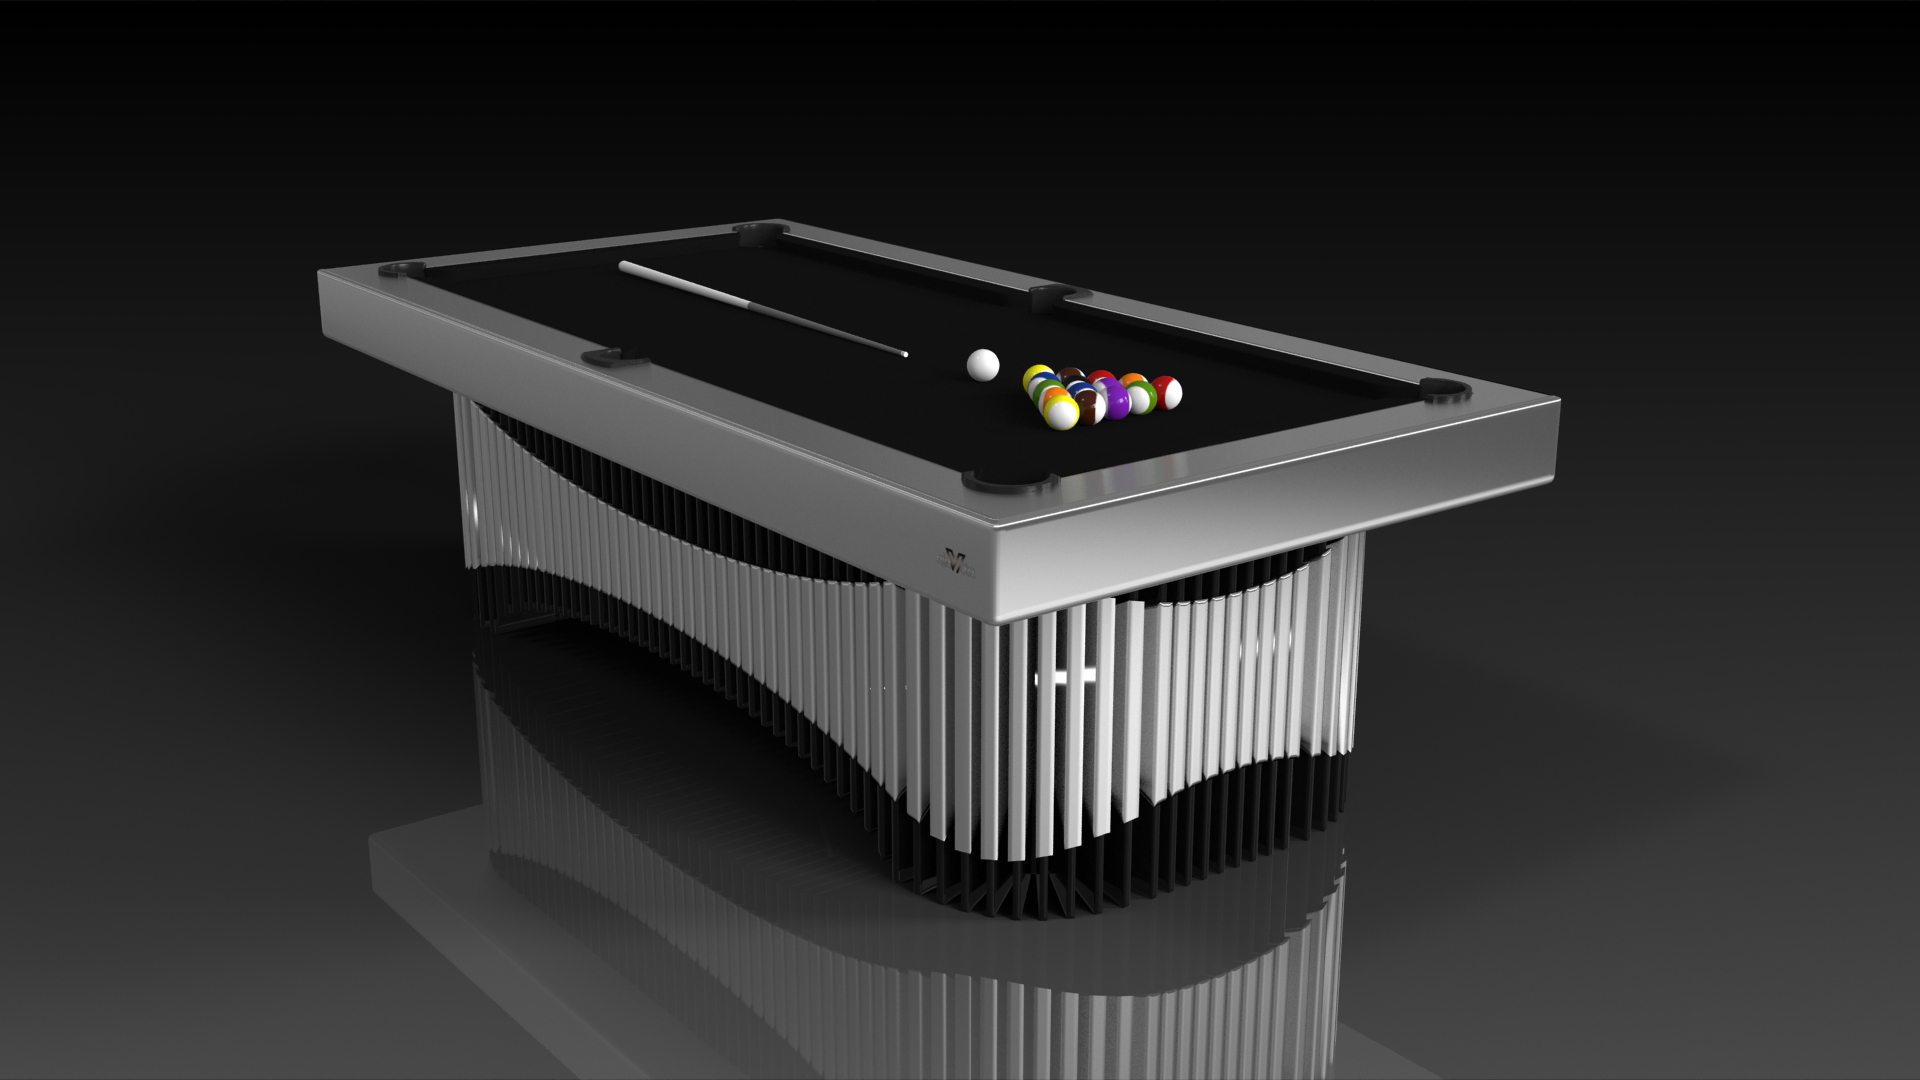 Elevate customs Modern design marimba pool table brushed aluminum 4